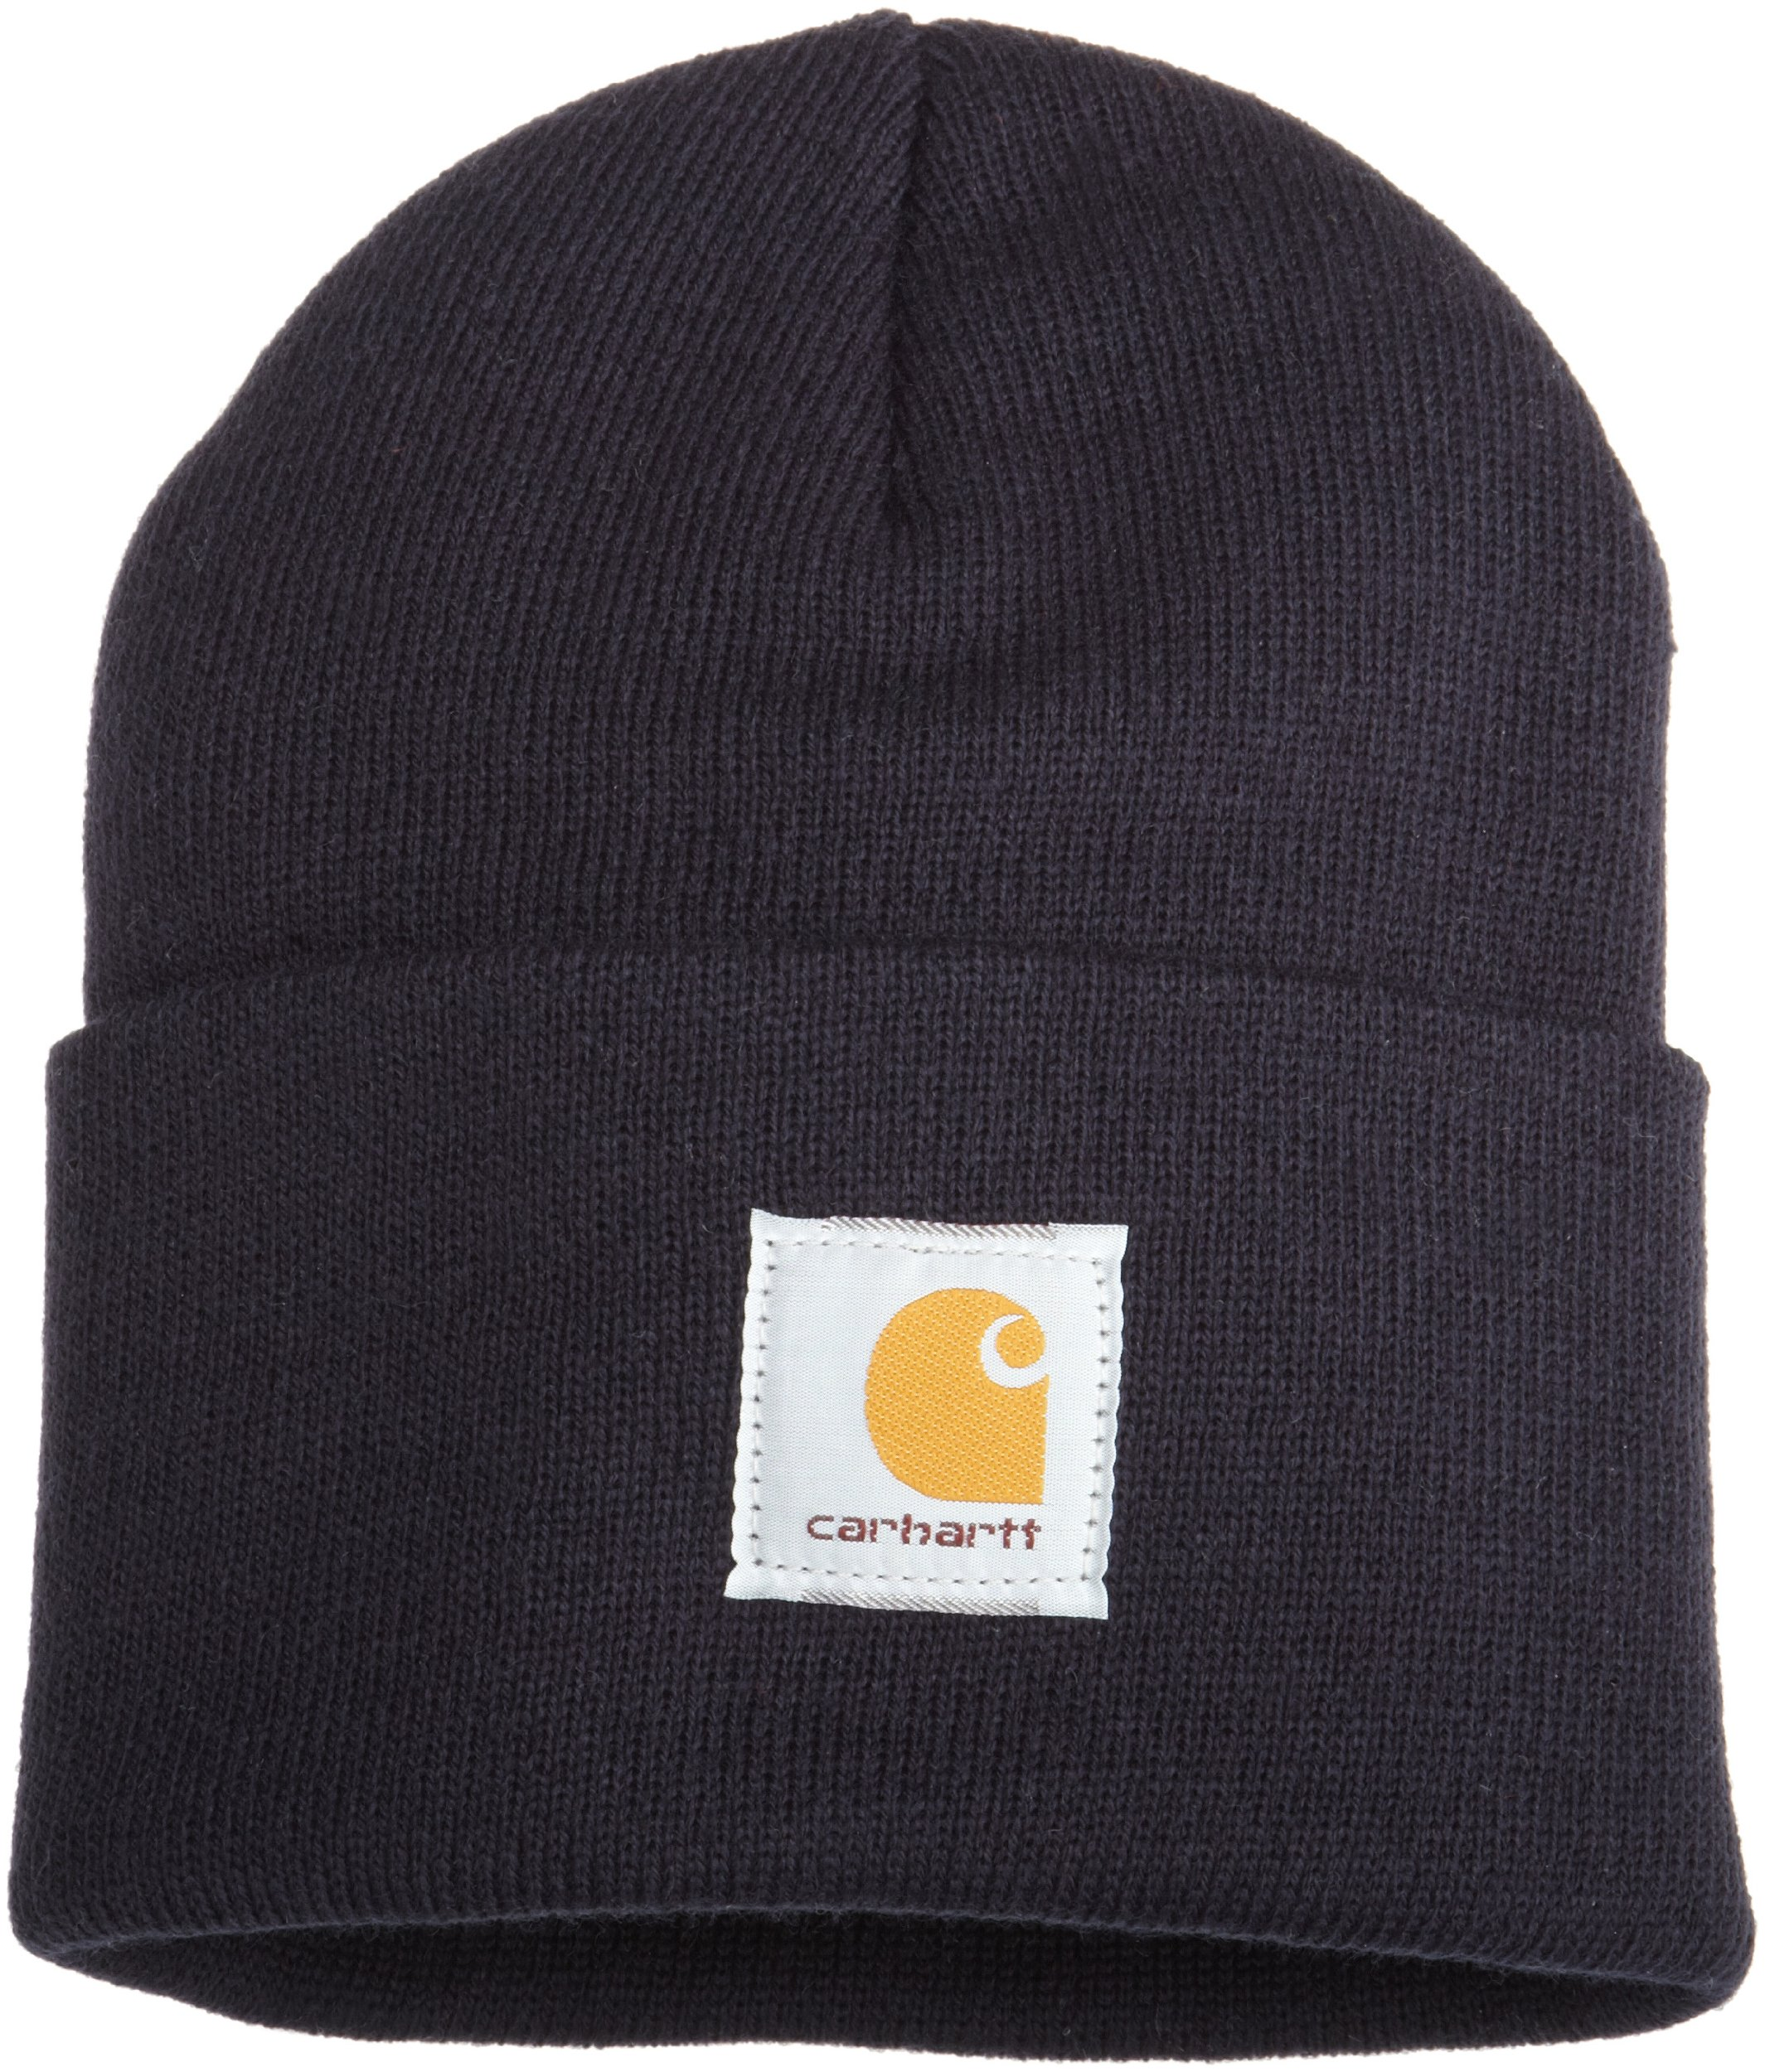 Carhartt Men's Acrylic Watch Hat A18 product image